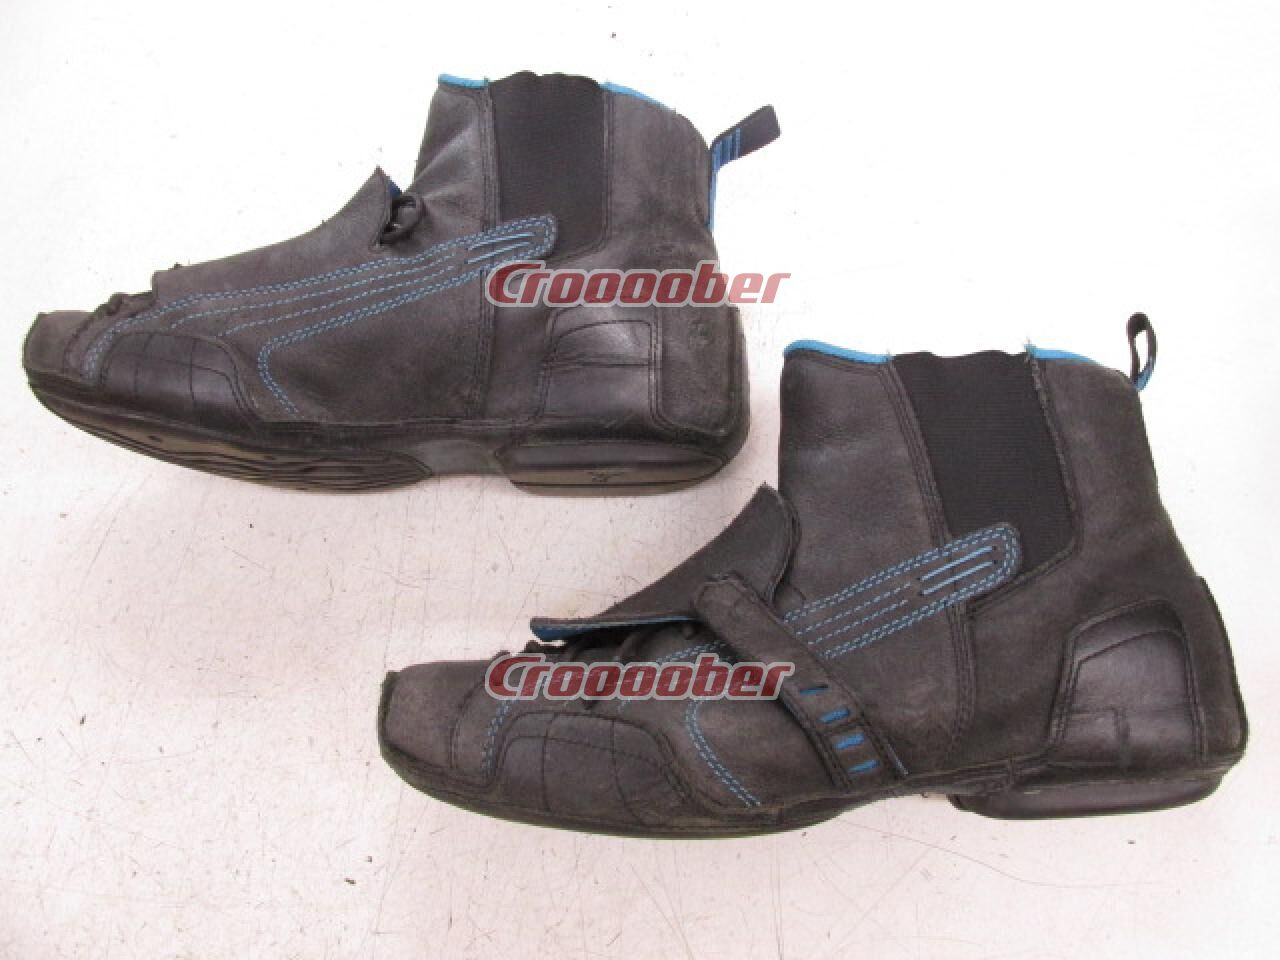 PUMA Riding Shoes VRF - 0107  26.5cm   fd7c4699e